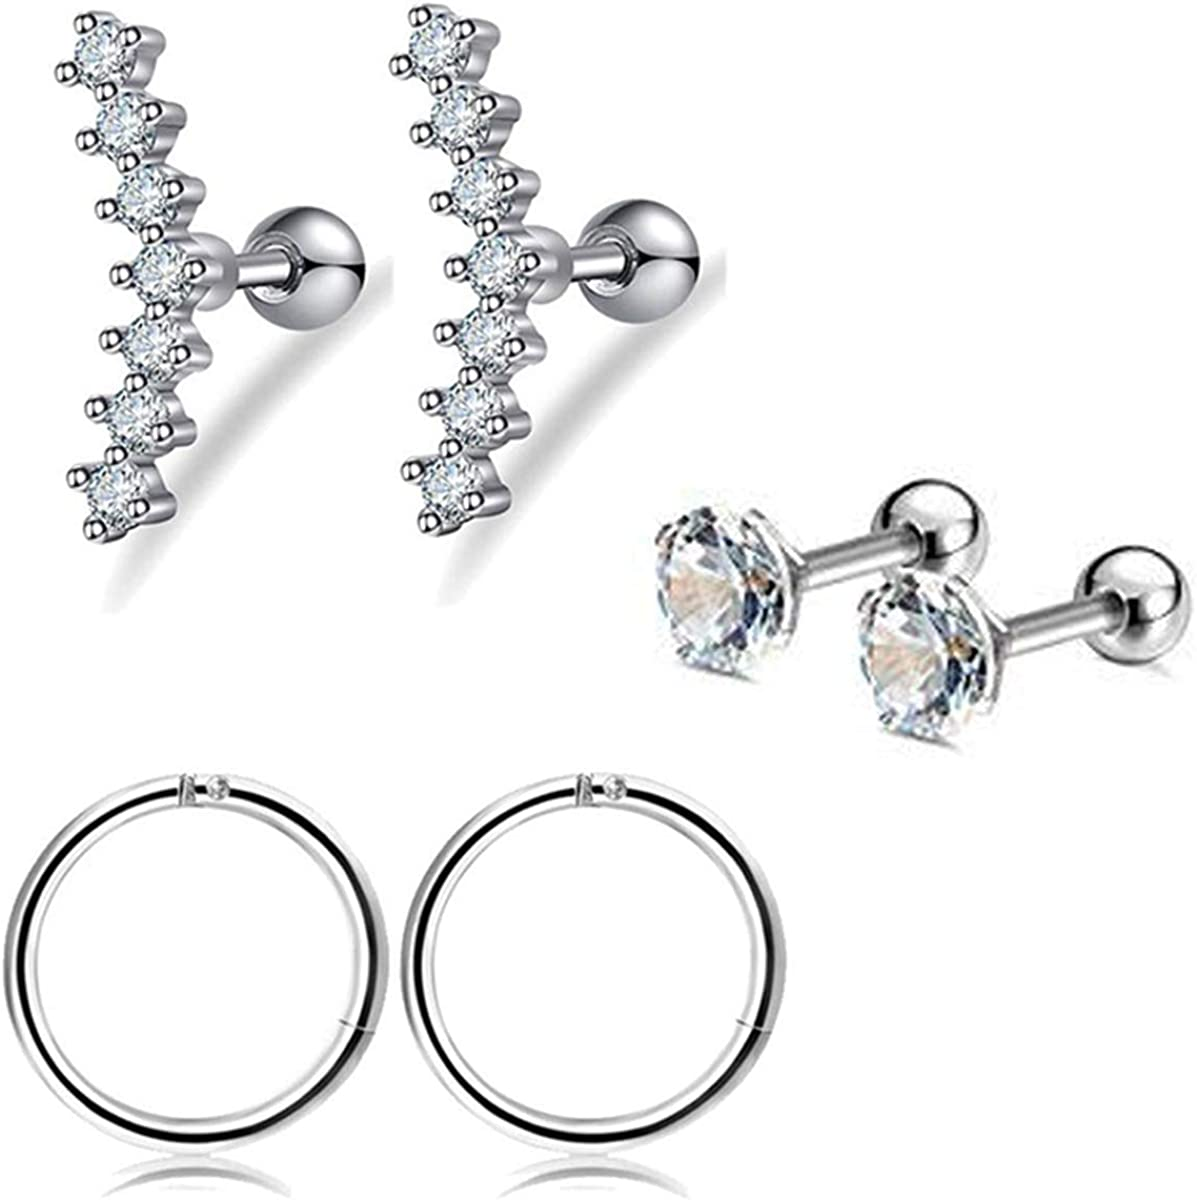 LOT 3 Pack Ear Cartilage Helix Tragus GREEN CZ Stud Ring Surgical Steel 16G